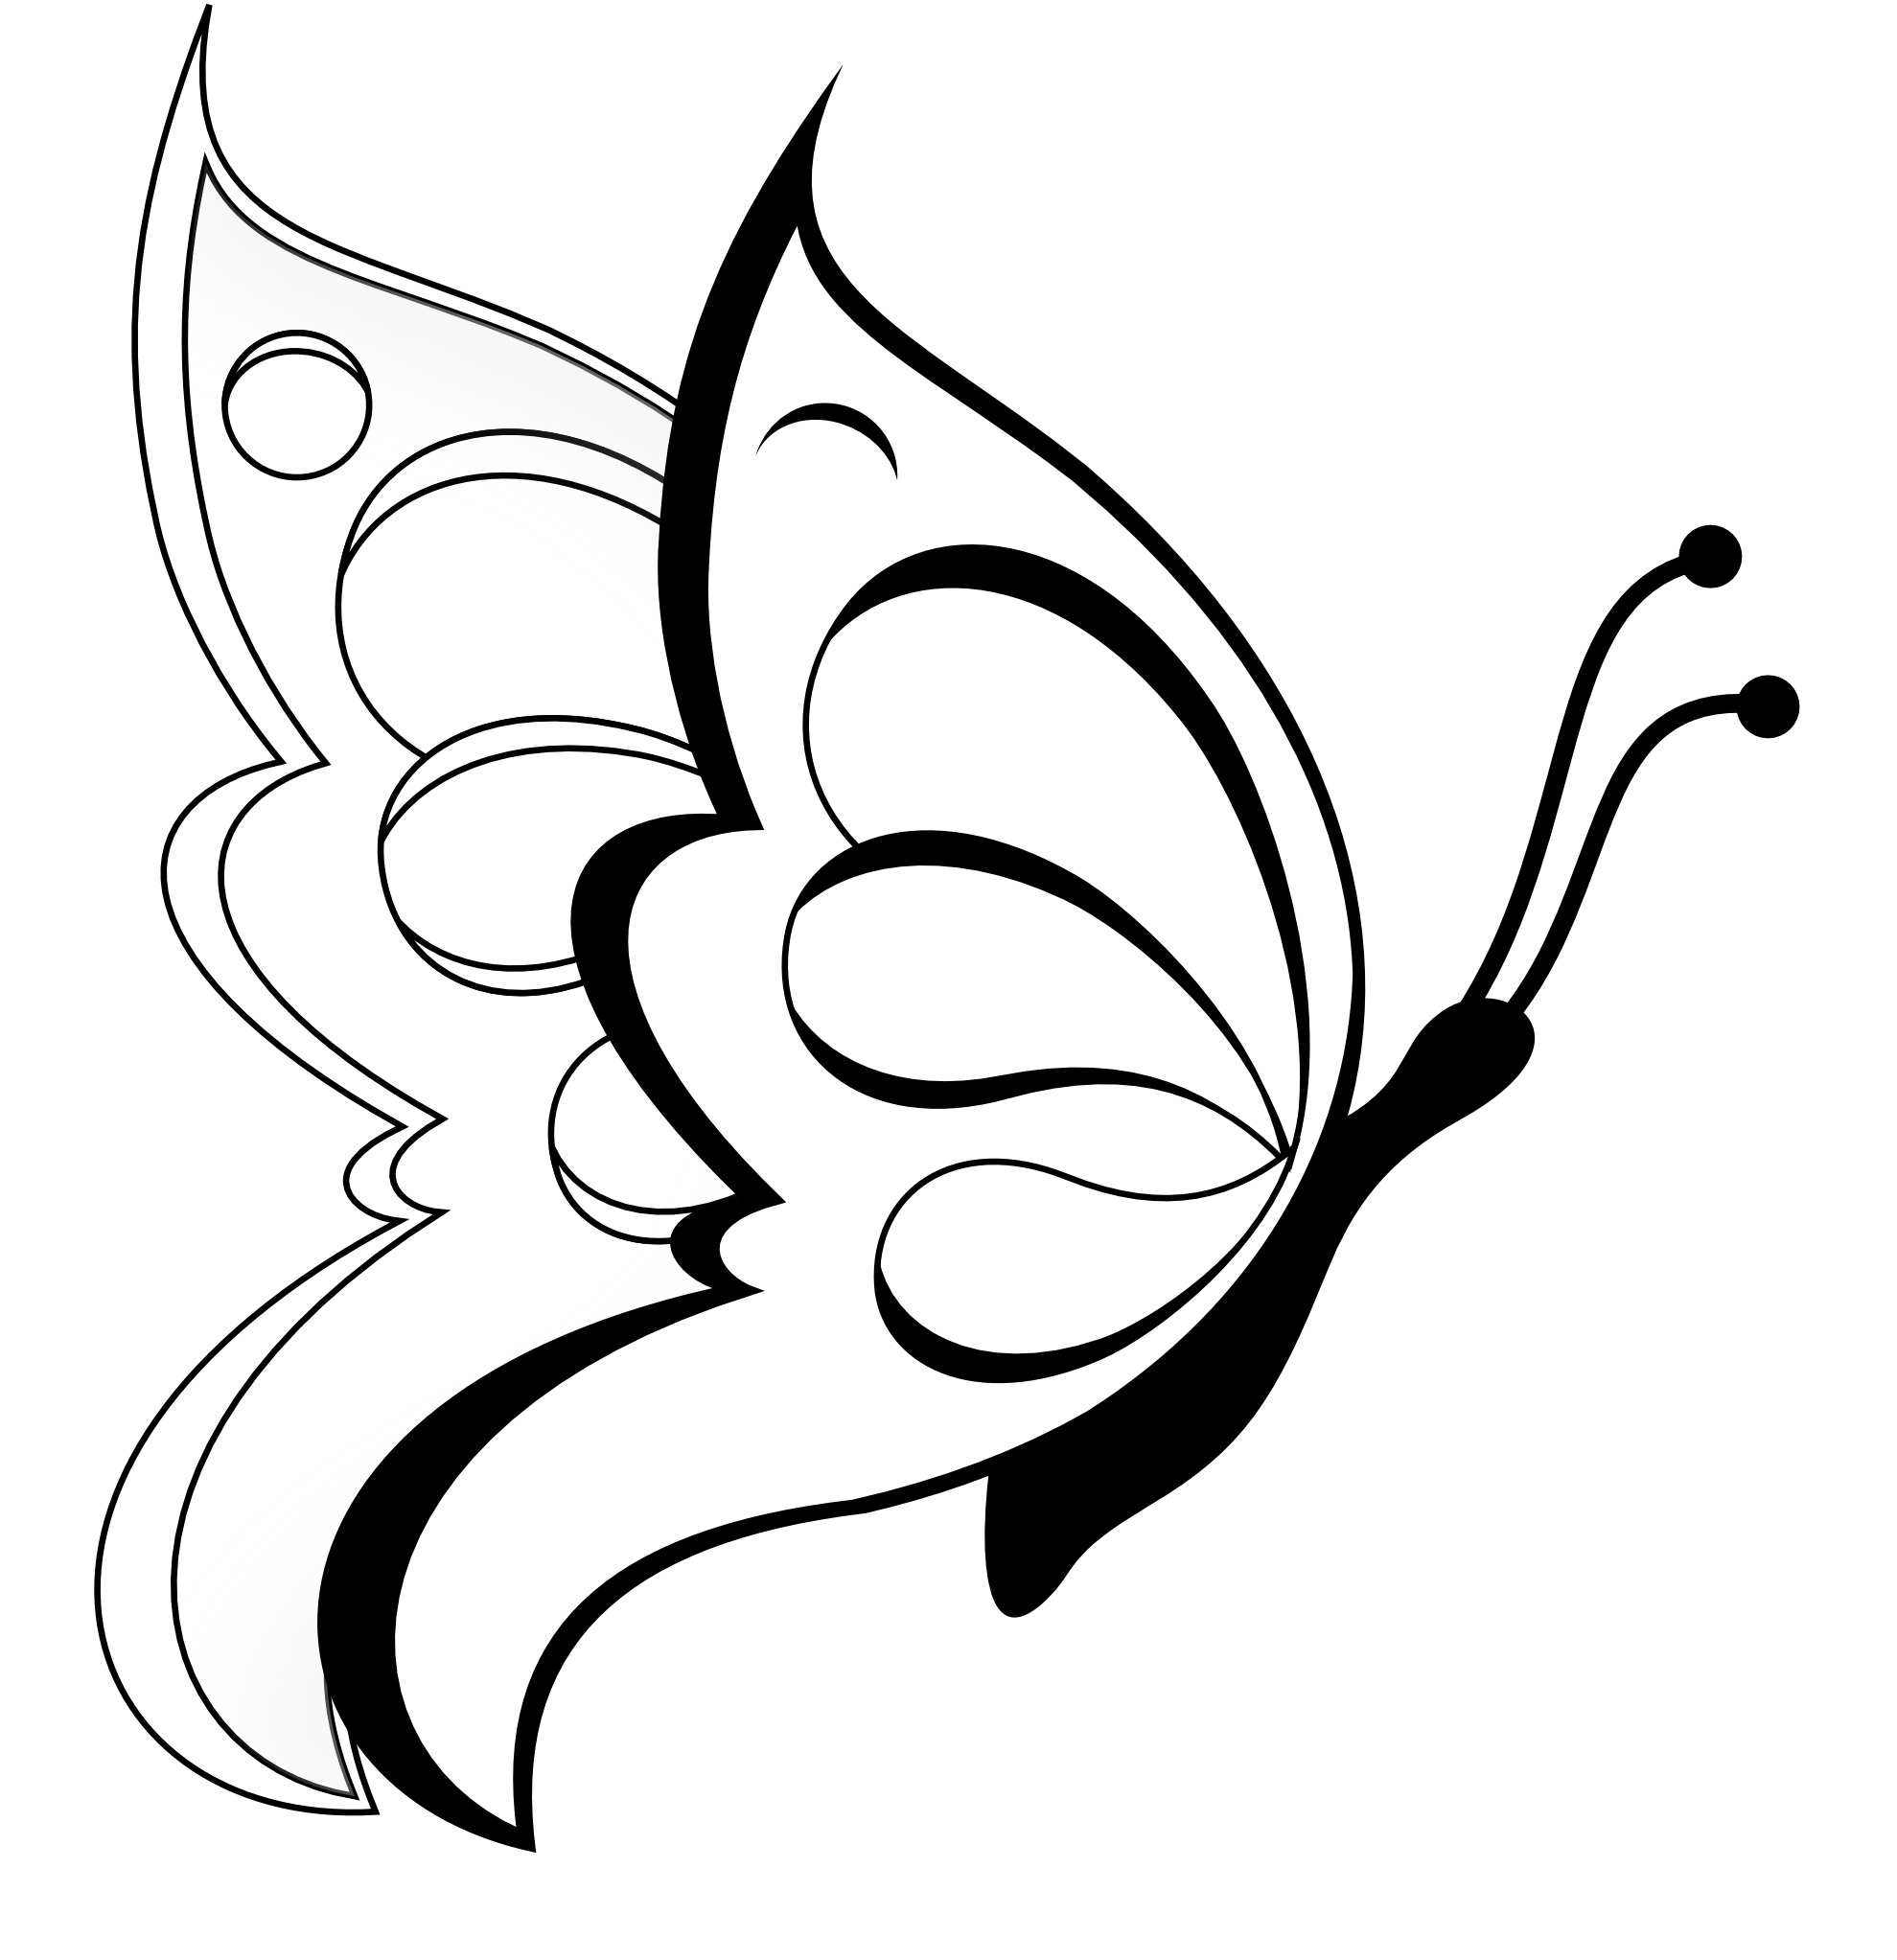 printable butterfly coloring sheets butterfly coloring printables for kids coloring printable butterfly sheets